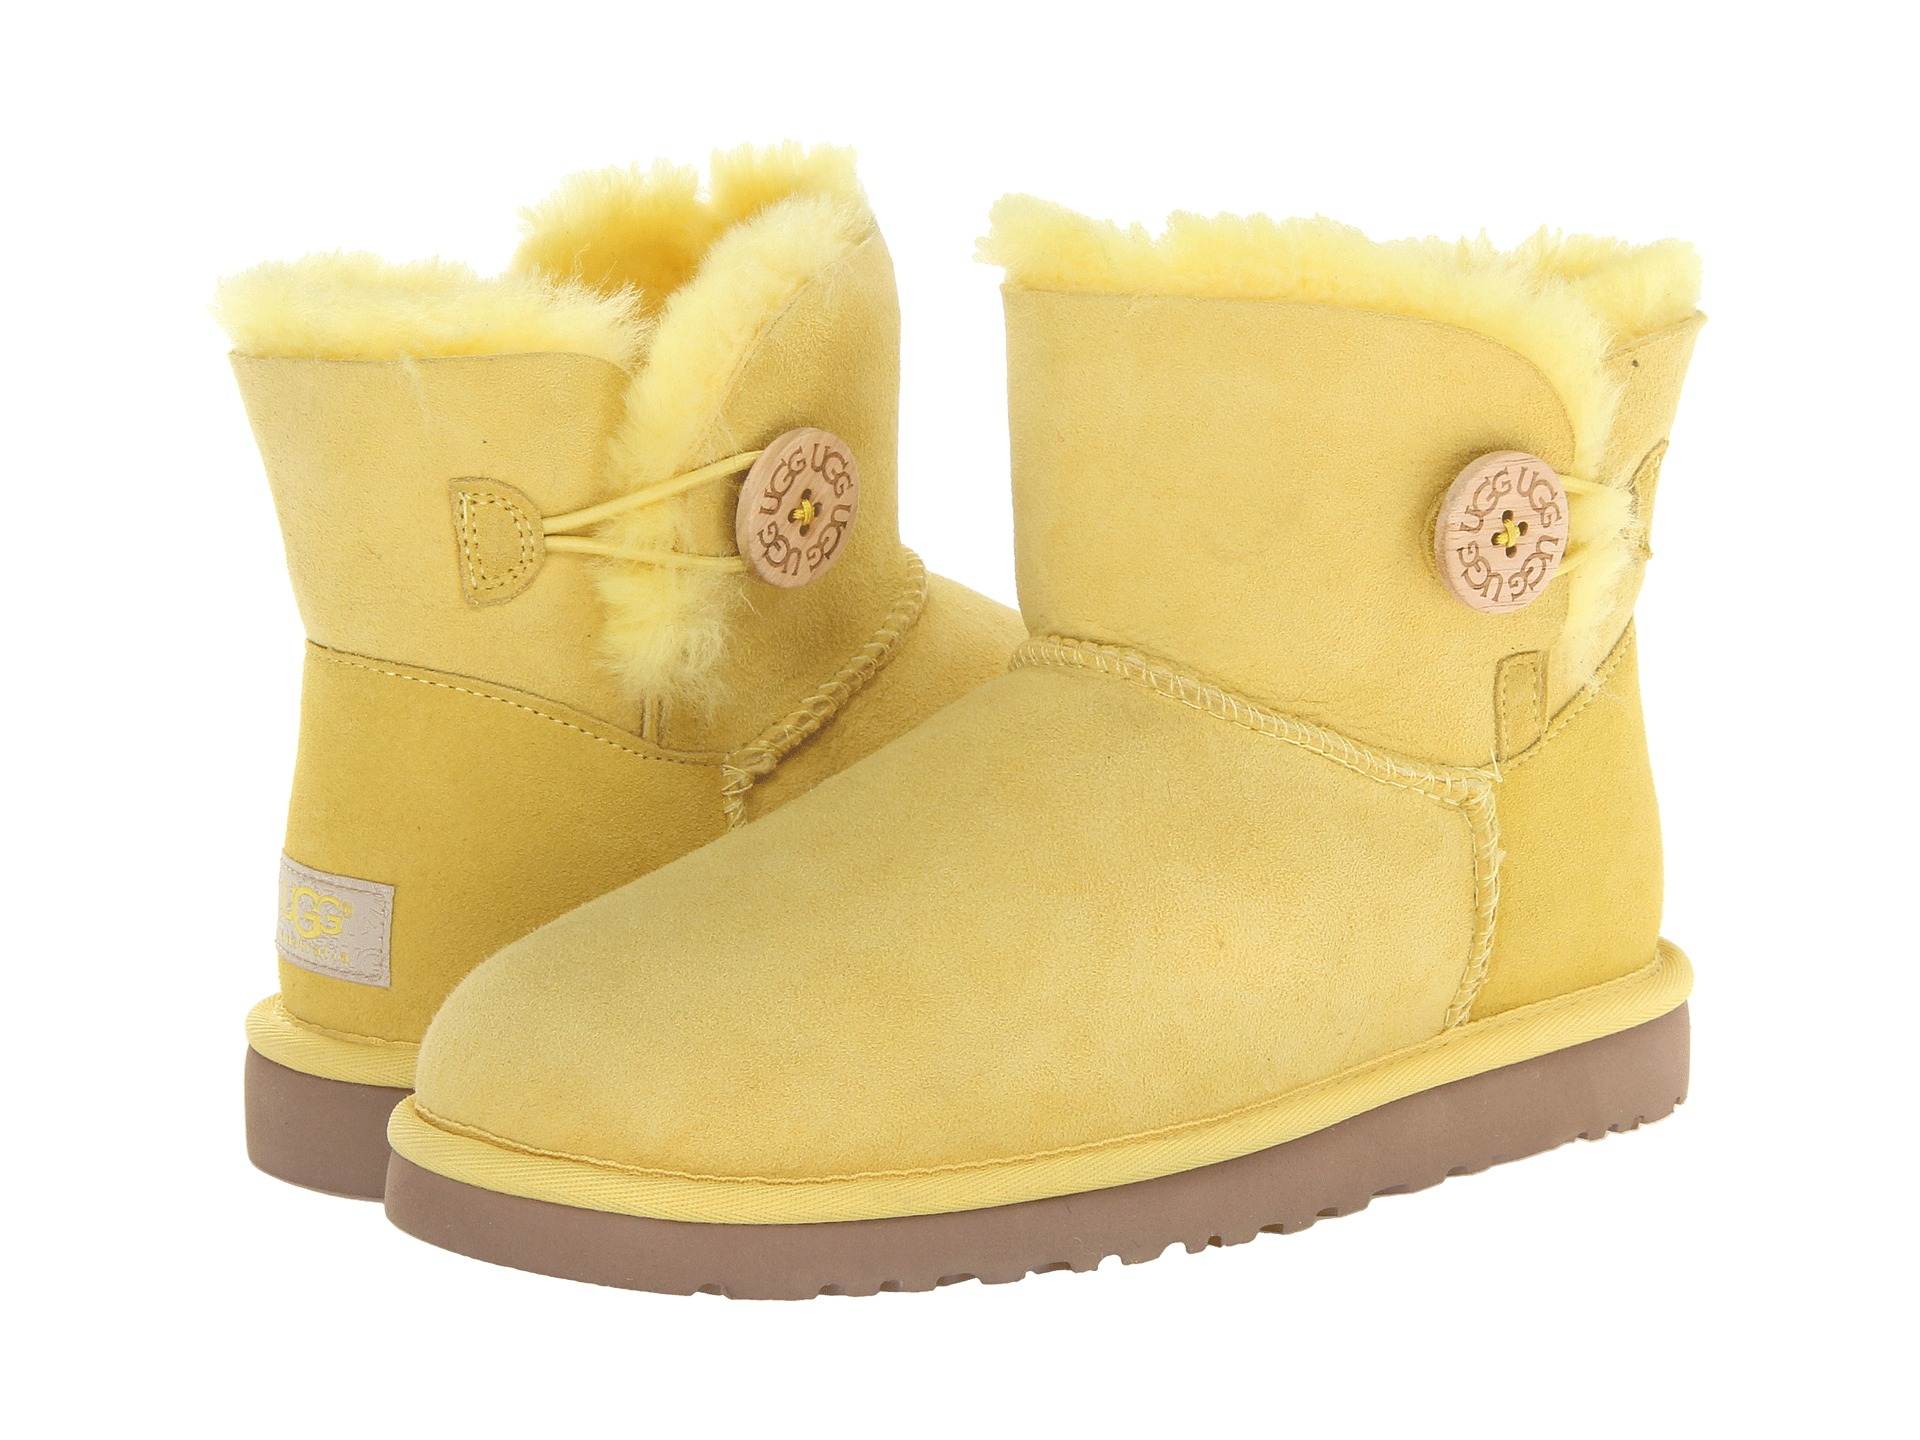 Explore the great range of women's shoes available at the official UGG online store. Choose from womens slippers, boots, loafers or moccasins. Shop here now!